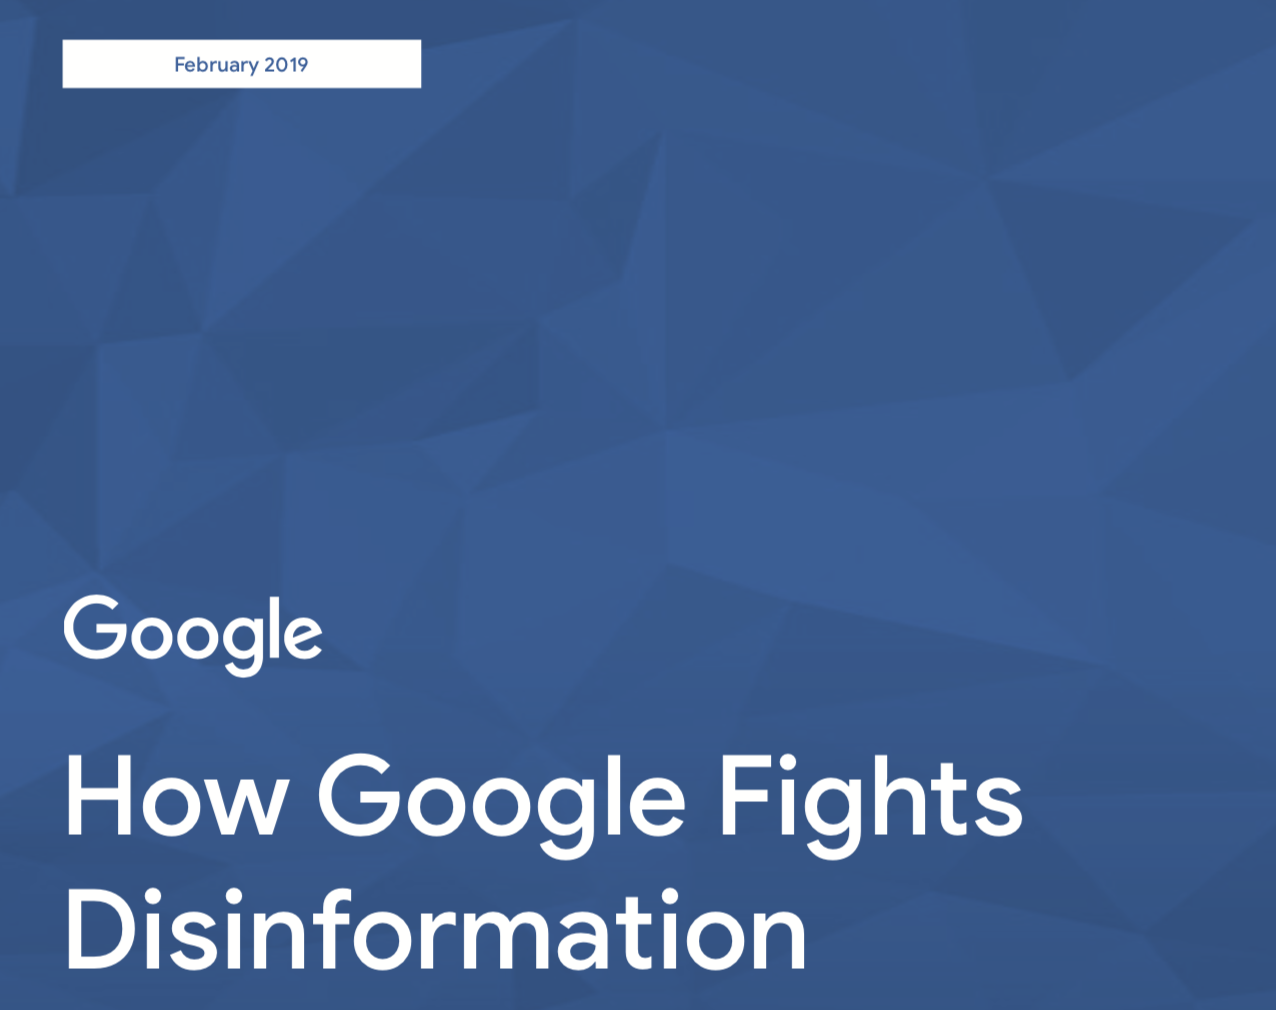 Fighting disinformation across our products